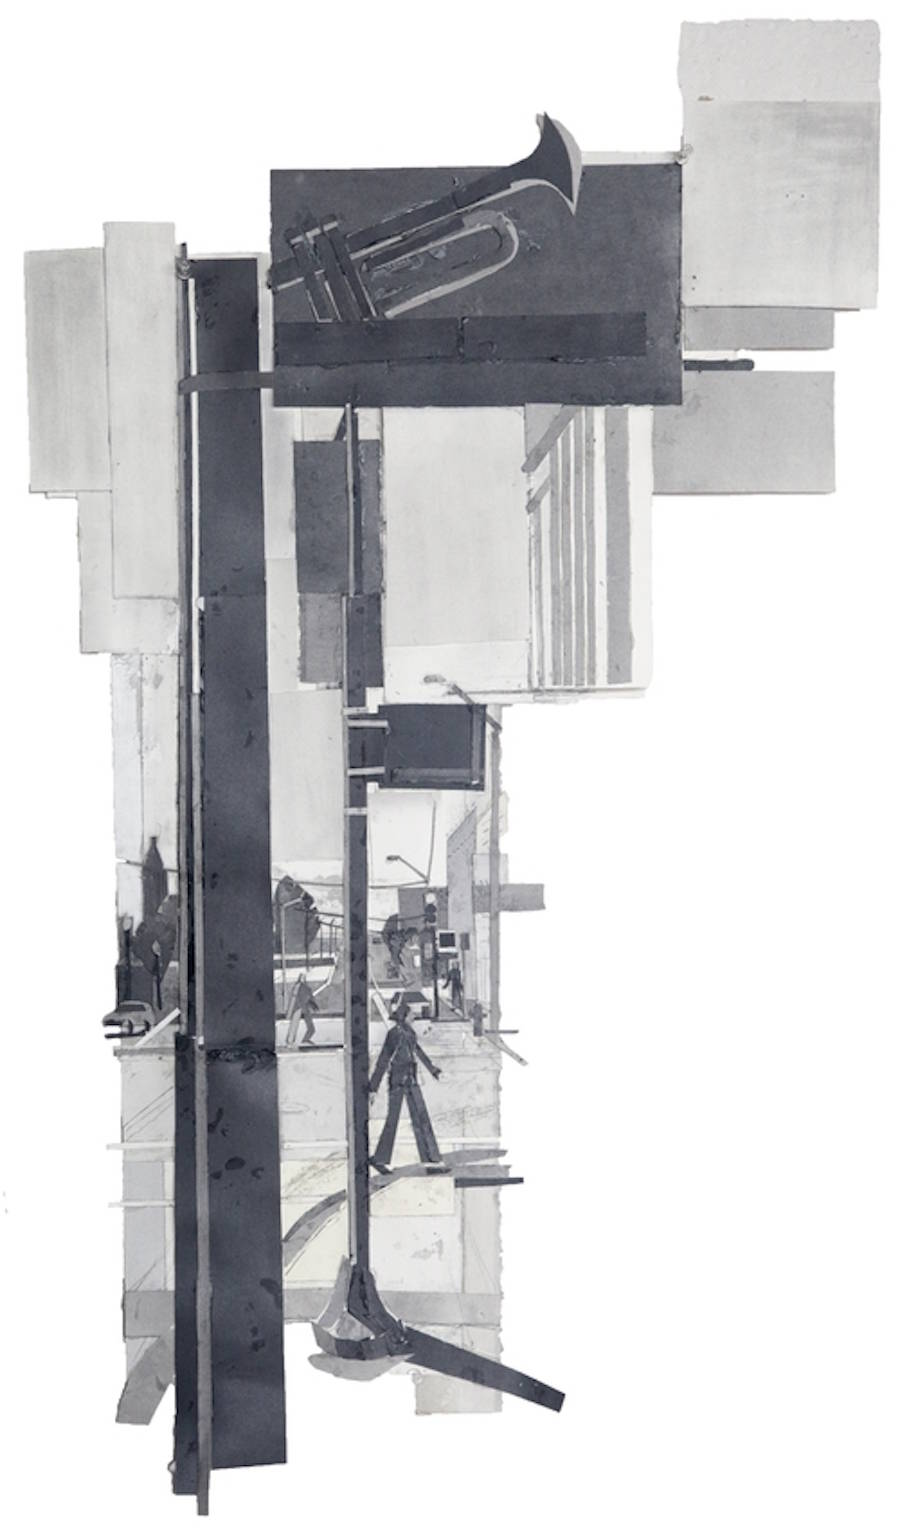 Black and White Collages of Urban Scenes